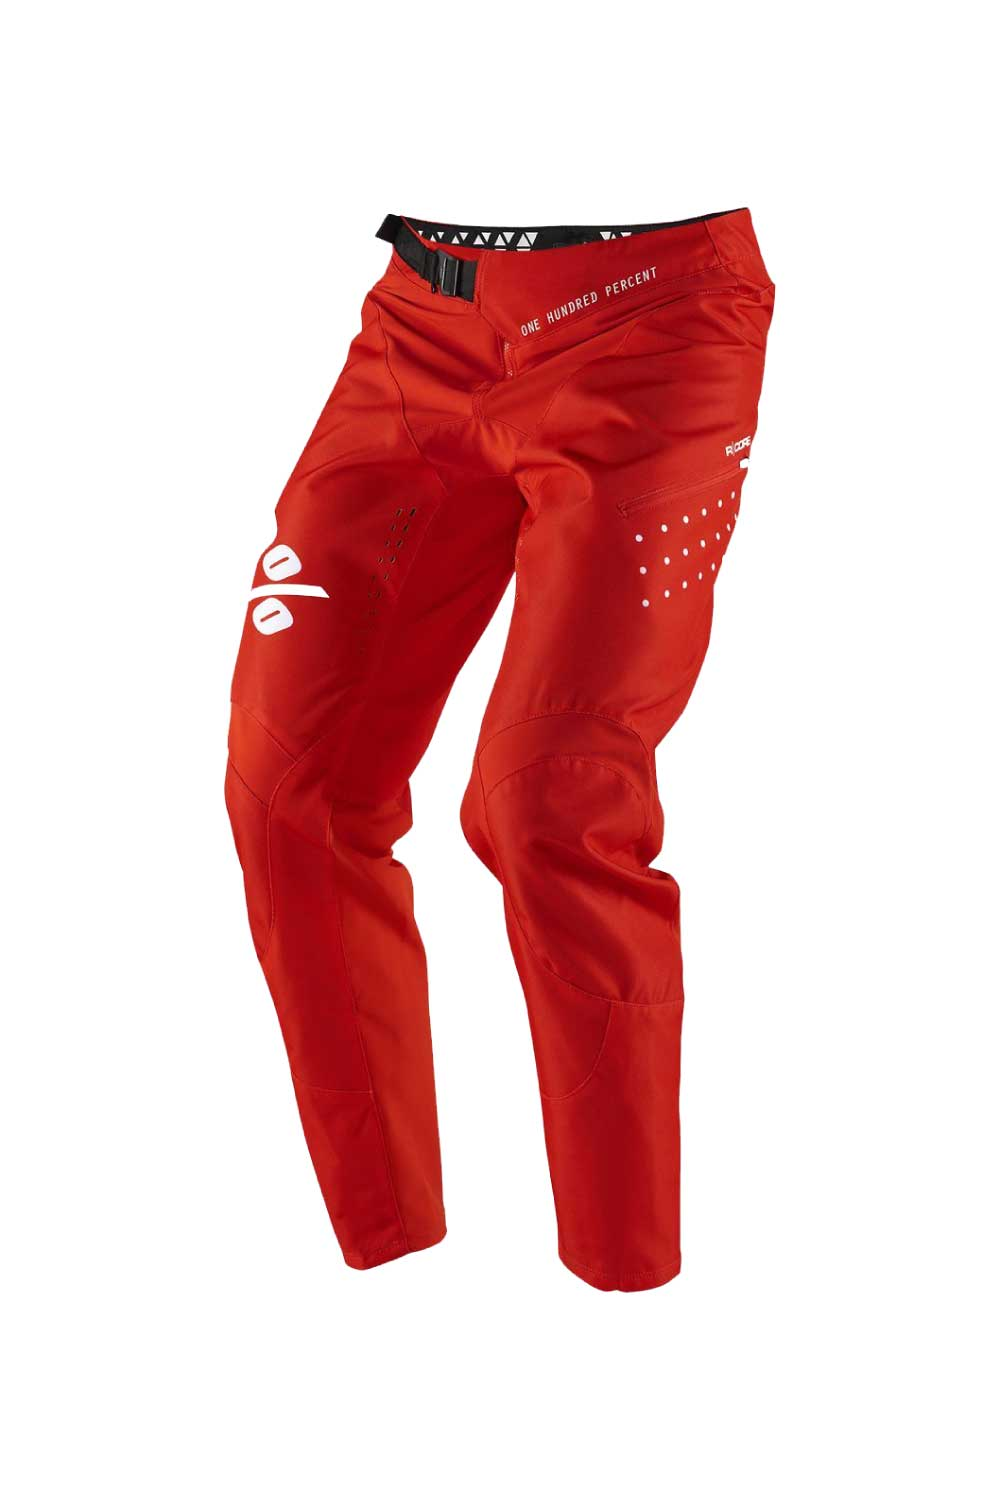 100% SS2019 R-CORE YOUTH DOWNHILL PANTS